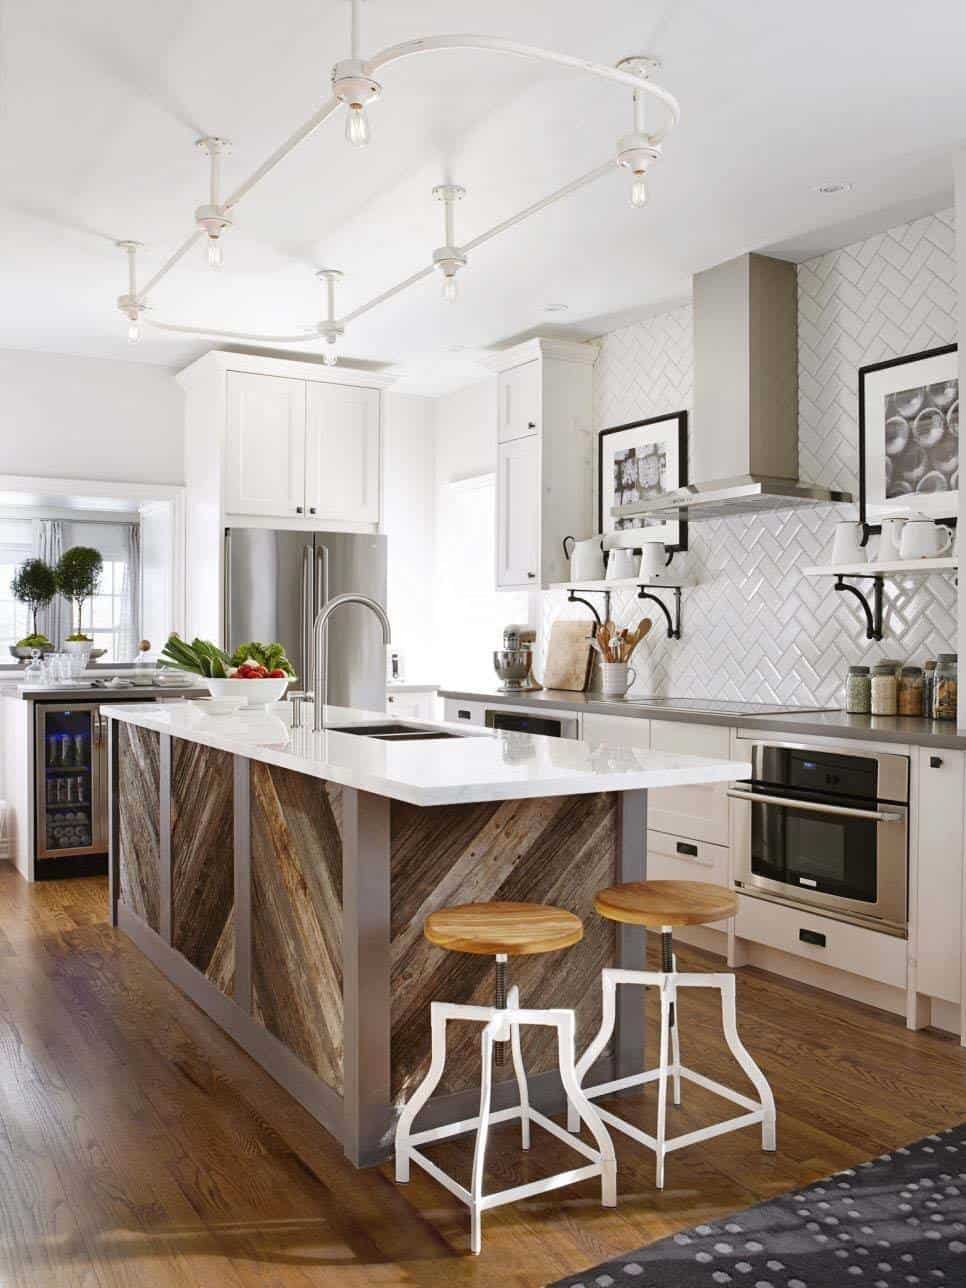 images of kitchen islands 30 brilliant kitchen island ideas that make a statement 4180